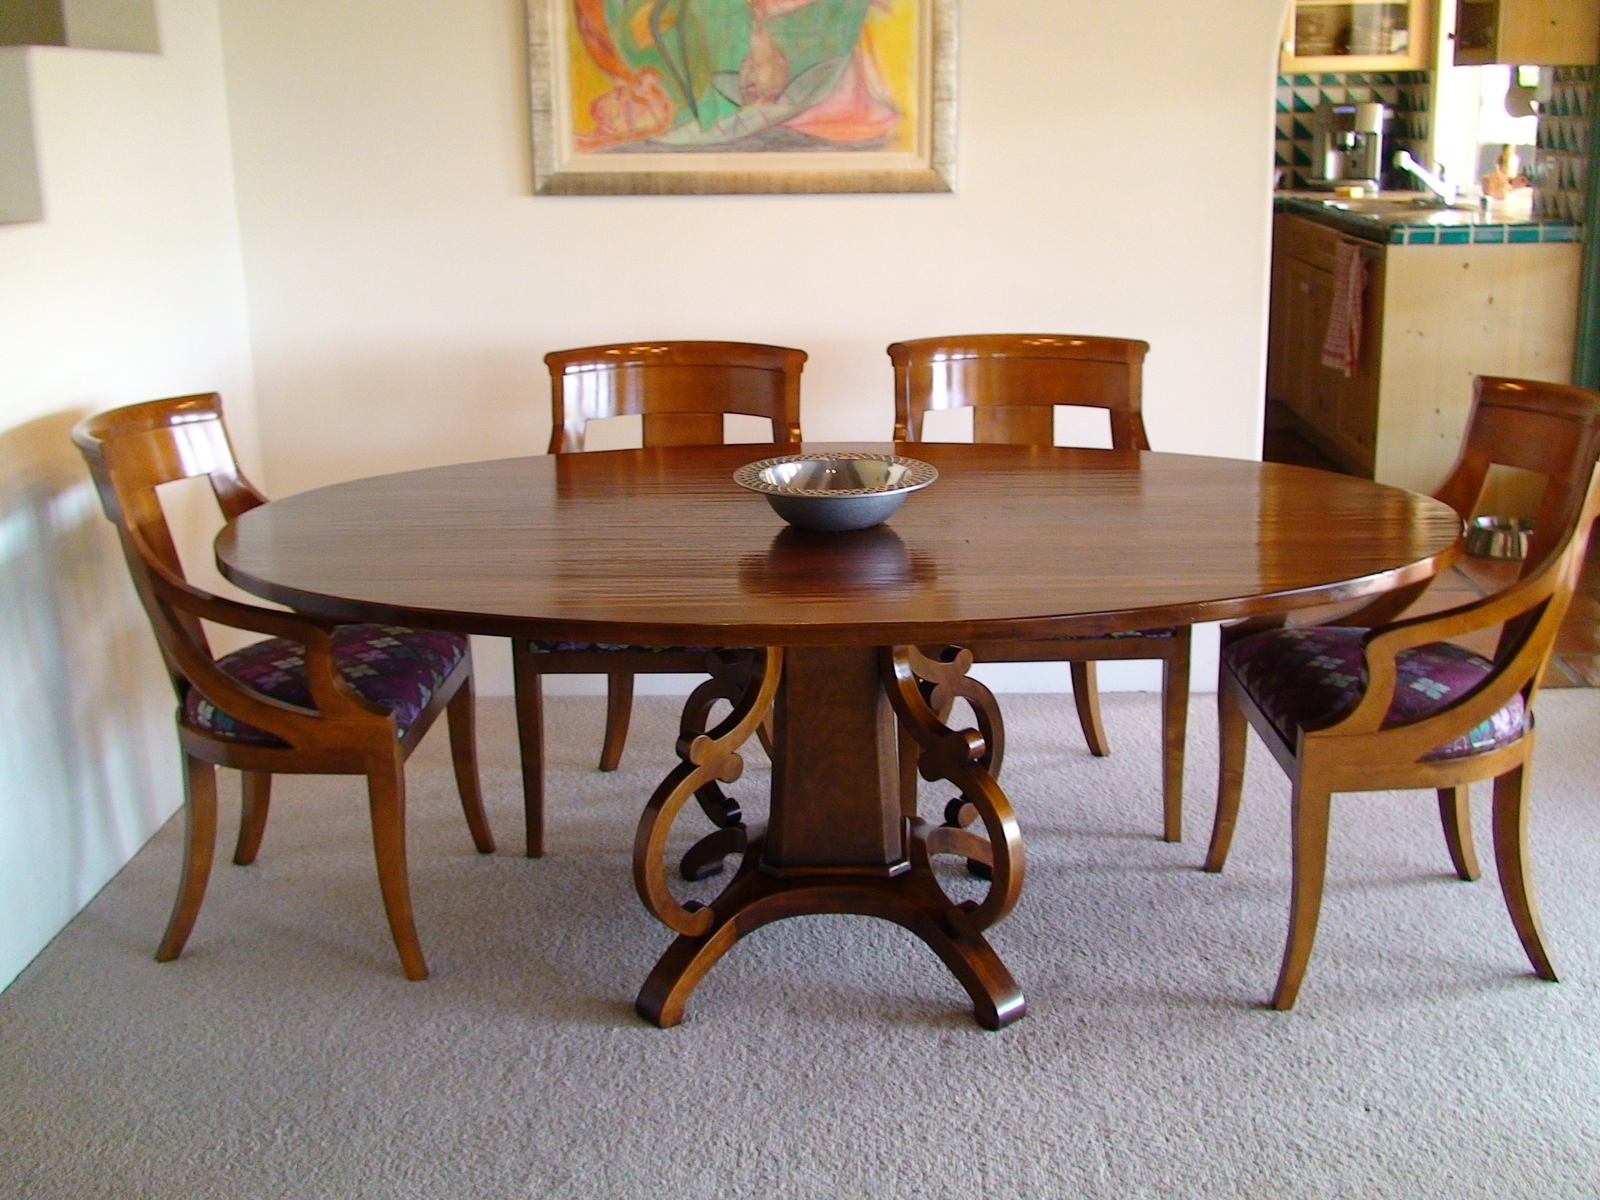 Wood dining table designs full hd pictures - Dining table design images ...